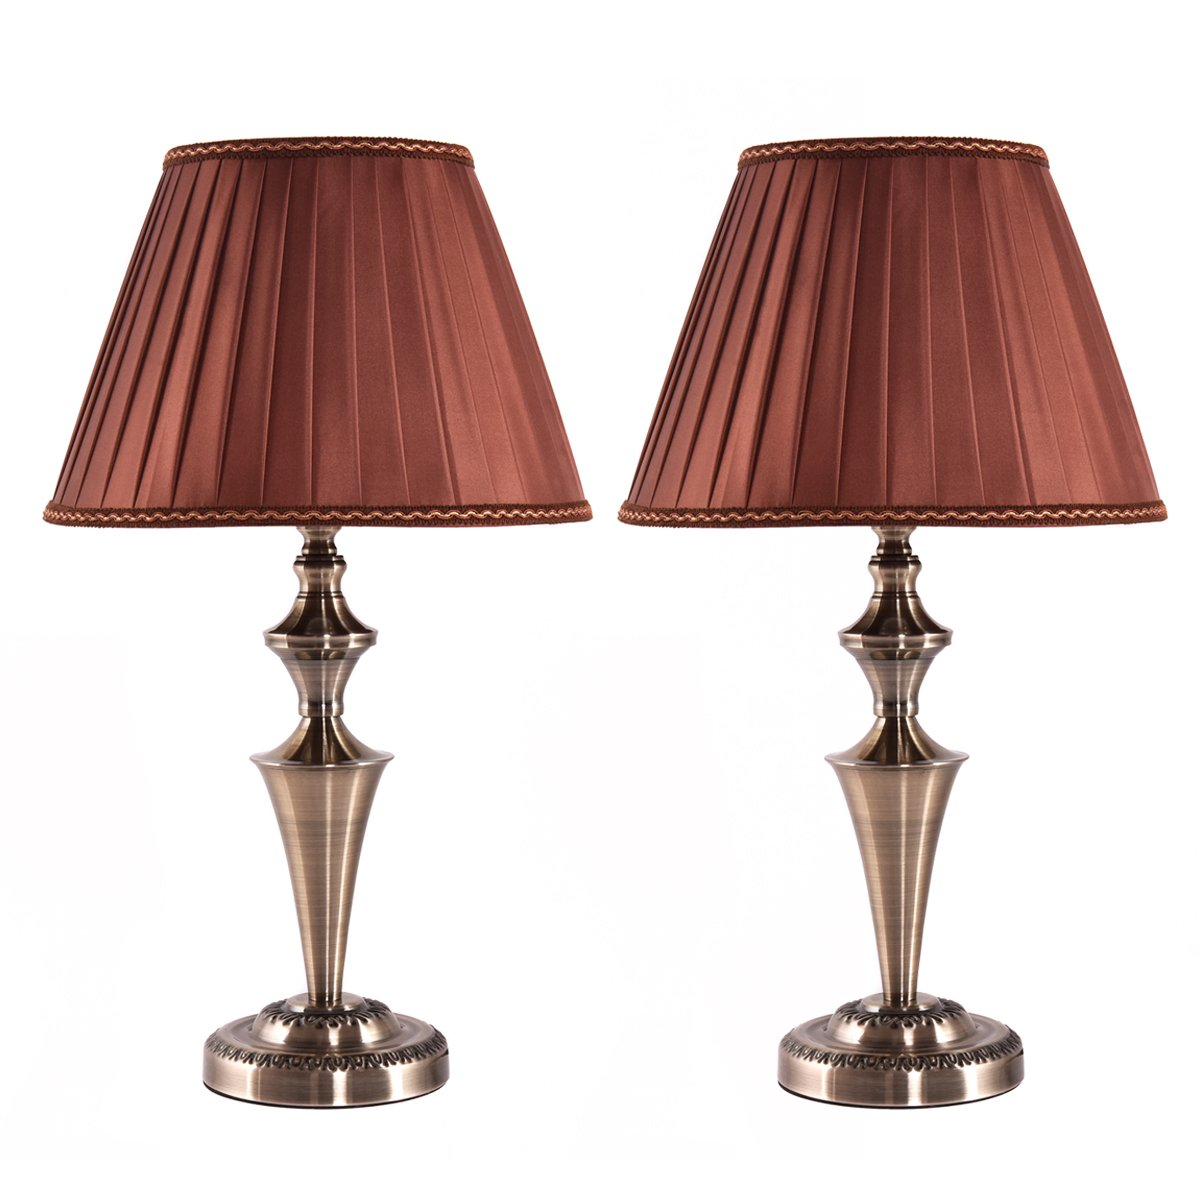 Costzon Bedside Table Lamp, Traditional Elegant Steel Base, Antique Style with Champagne Fabric Shade Bulb for Bedroom Living Room Coffee Desk Lamp, Include LED Bulb, Cord (Brass, Set of 2)